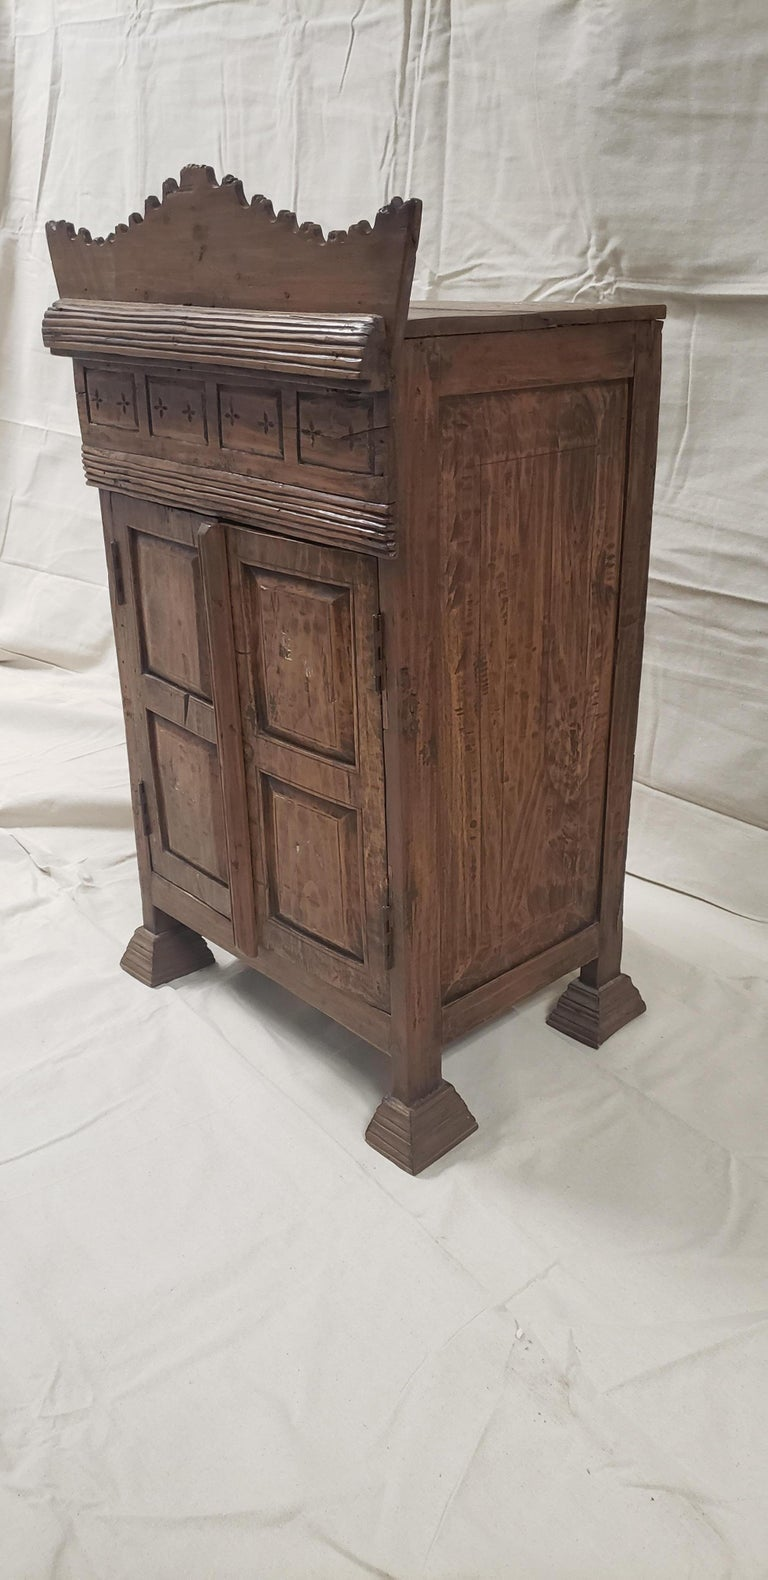 19th century Balinese temple cabinet.